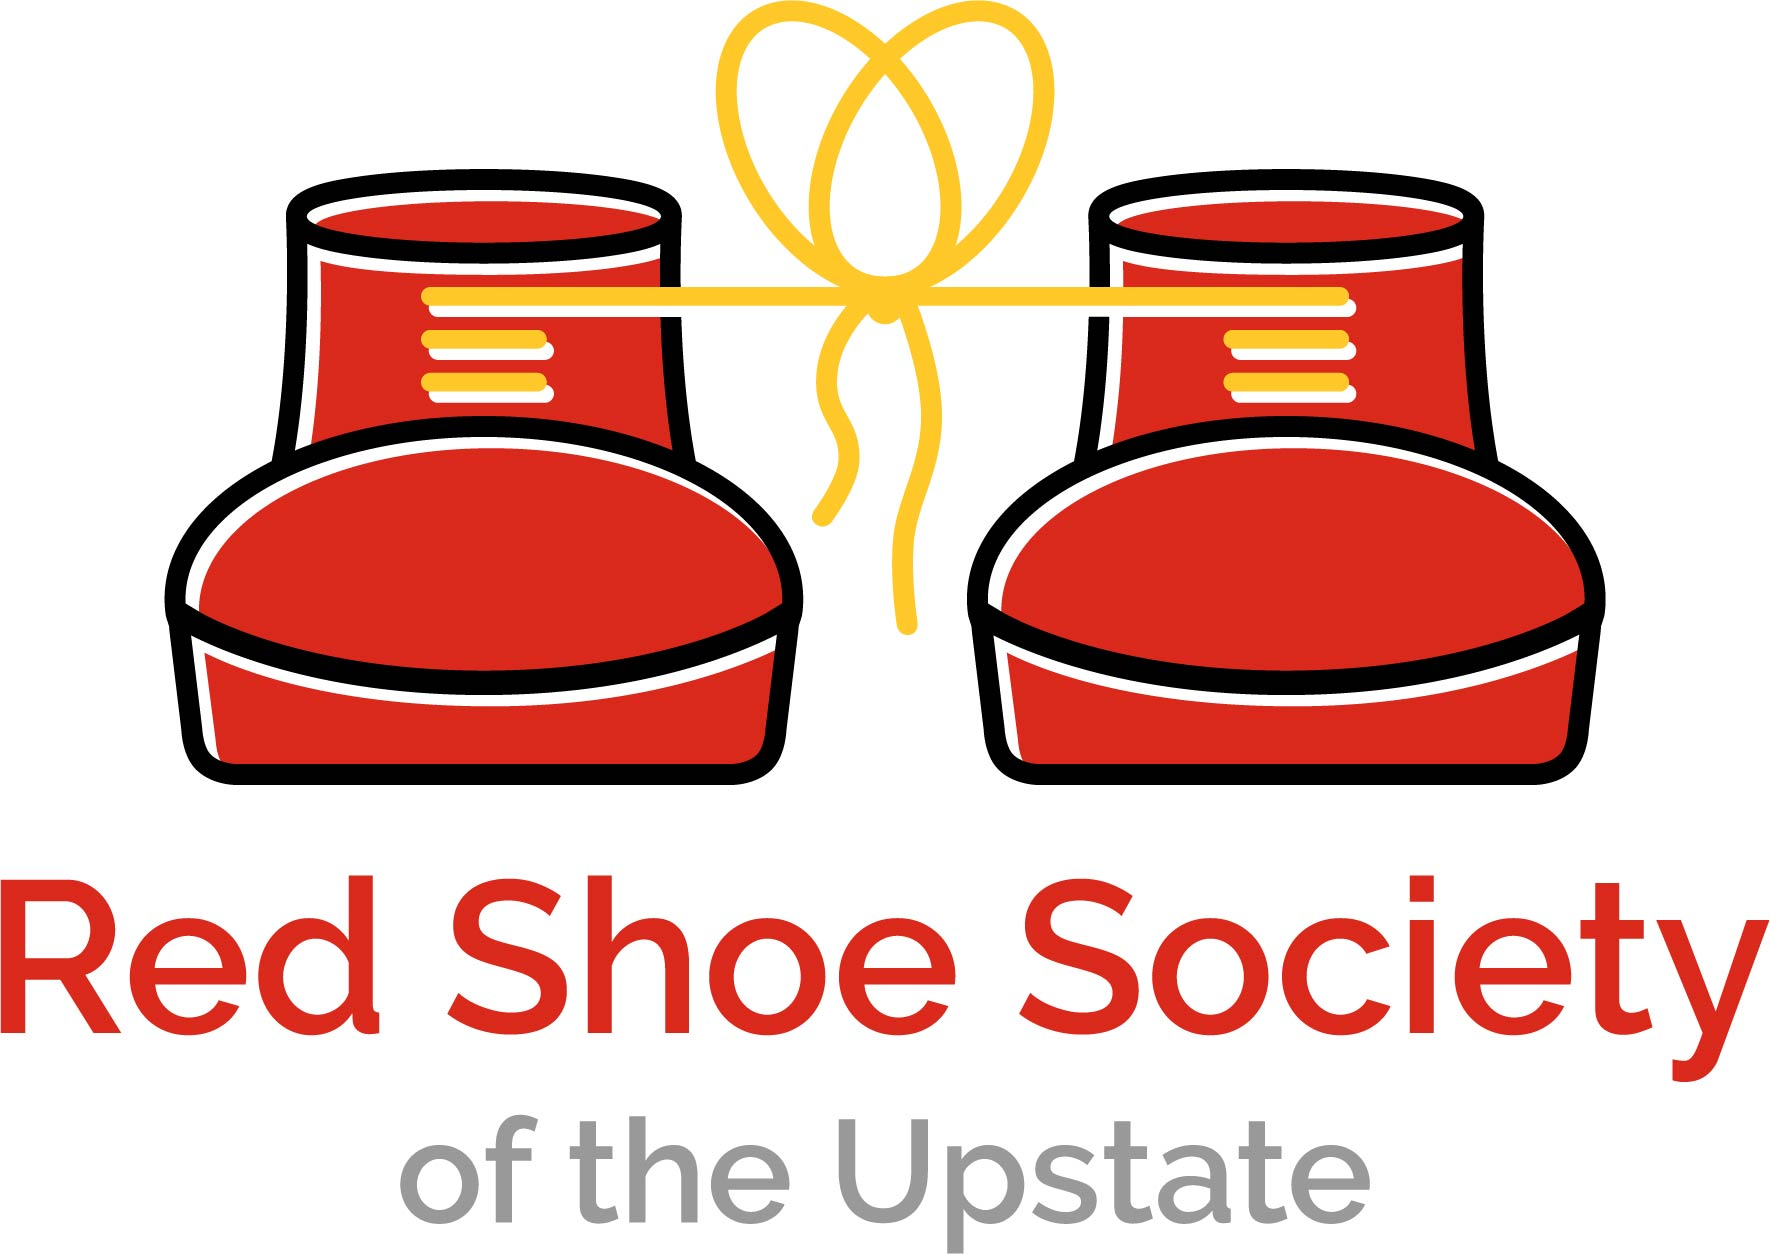 Red Shoe Society